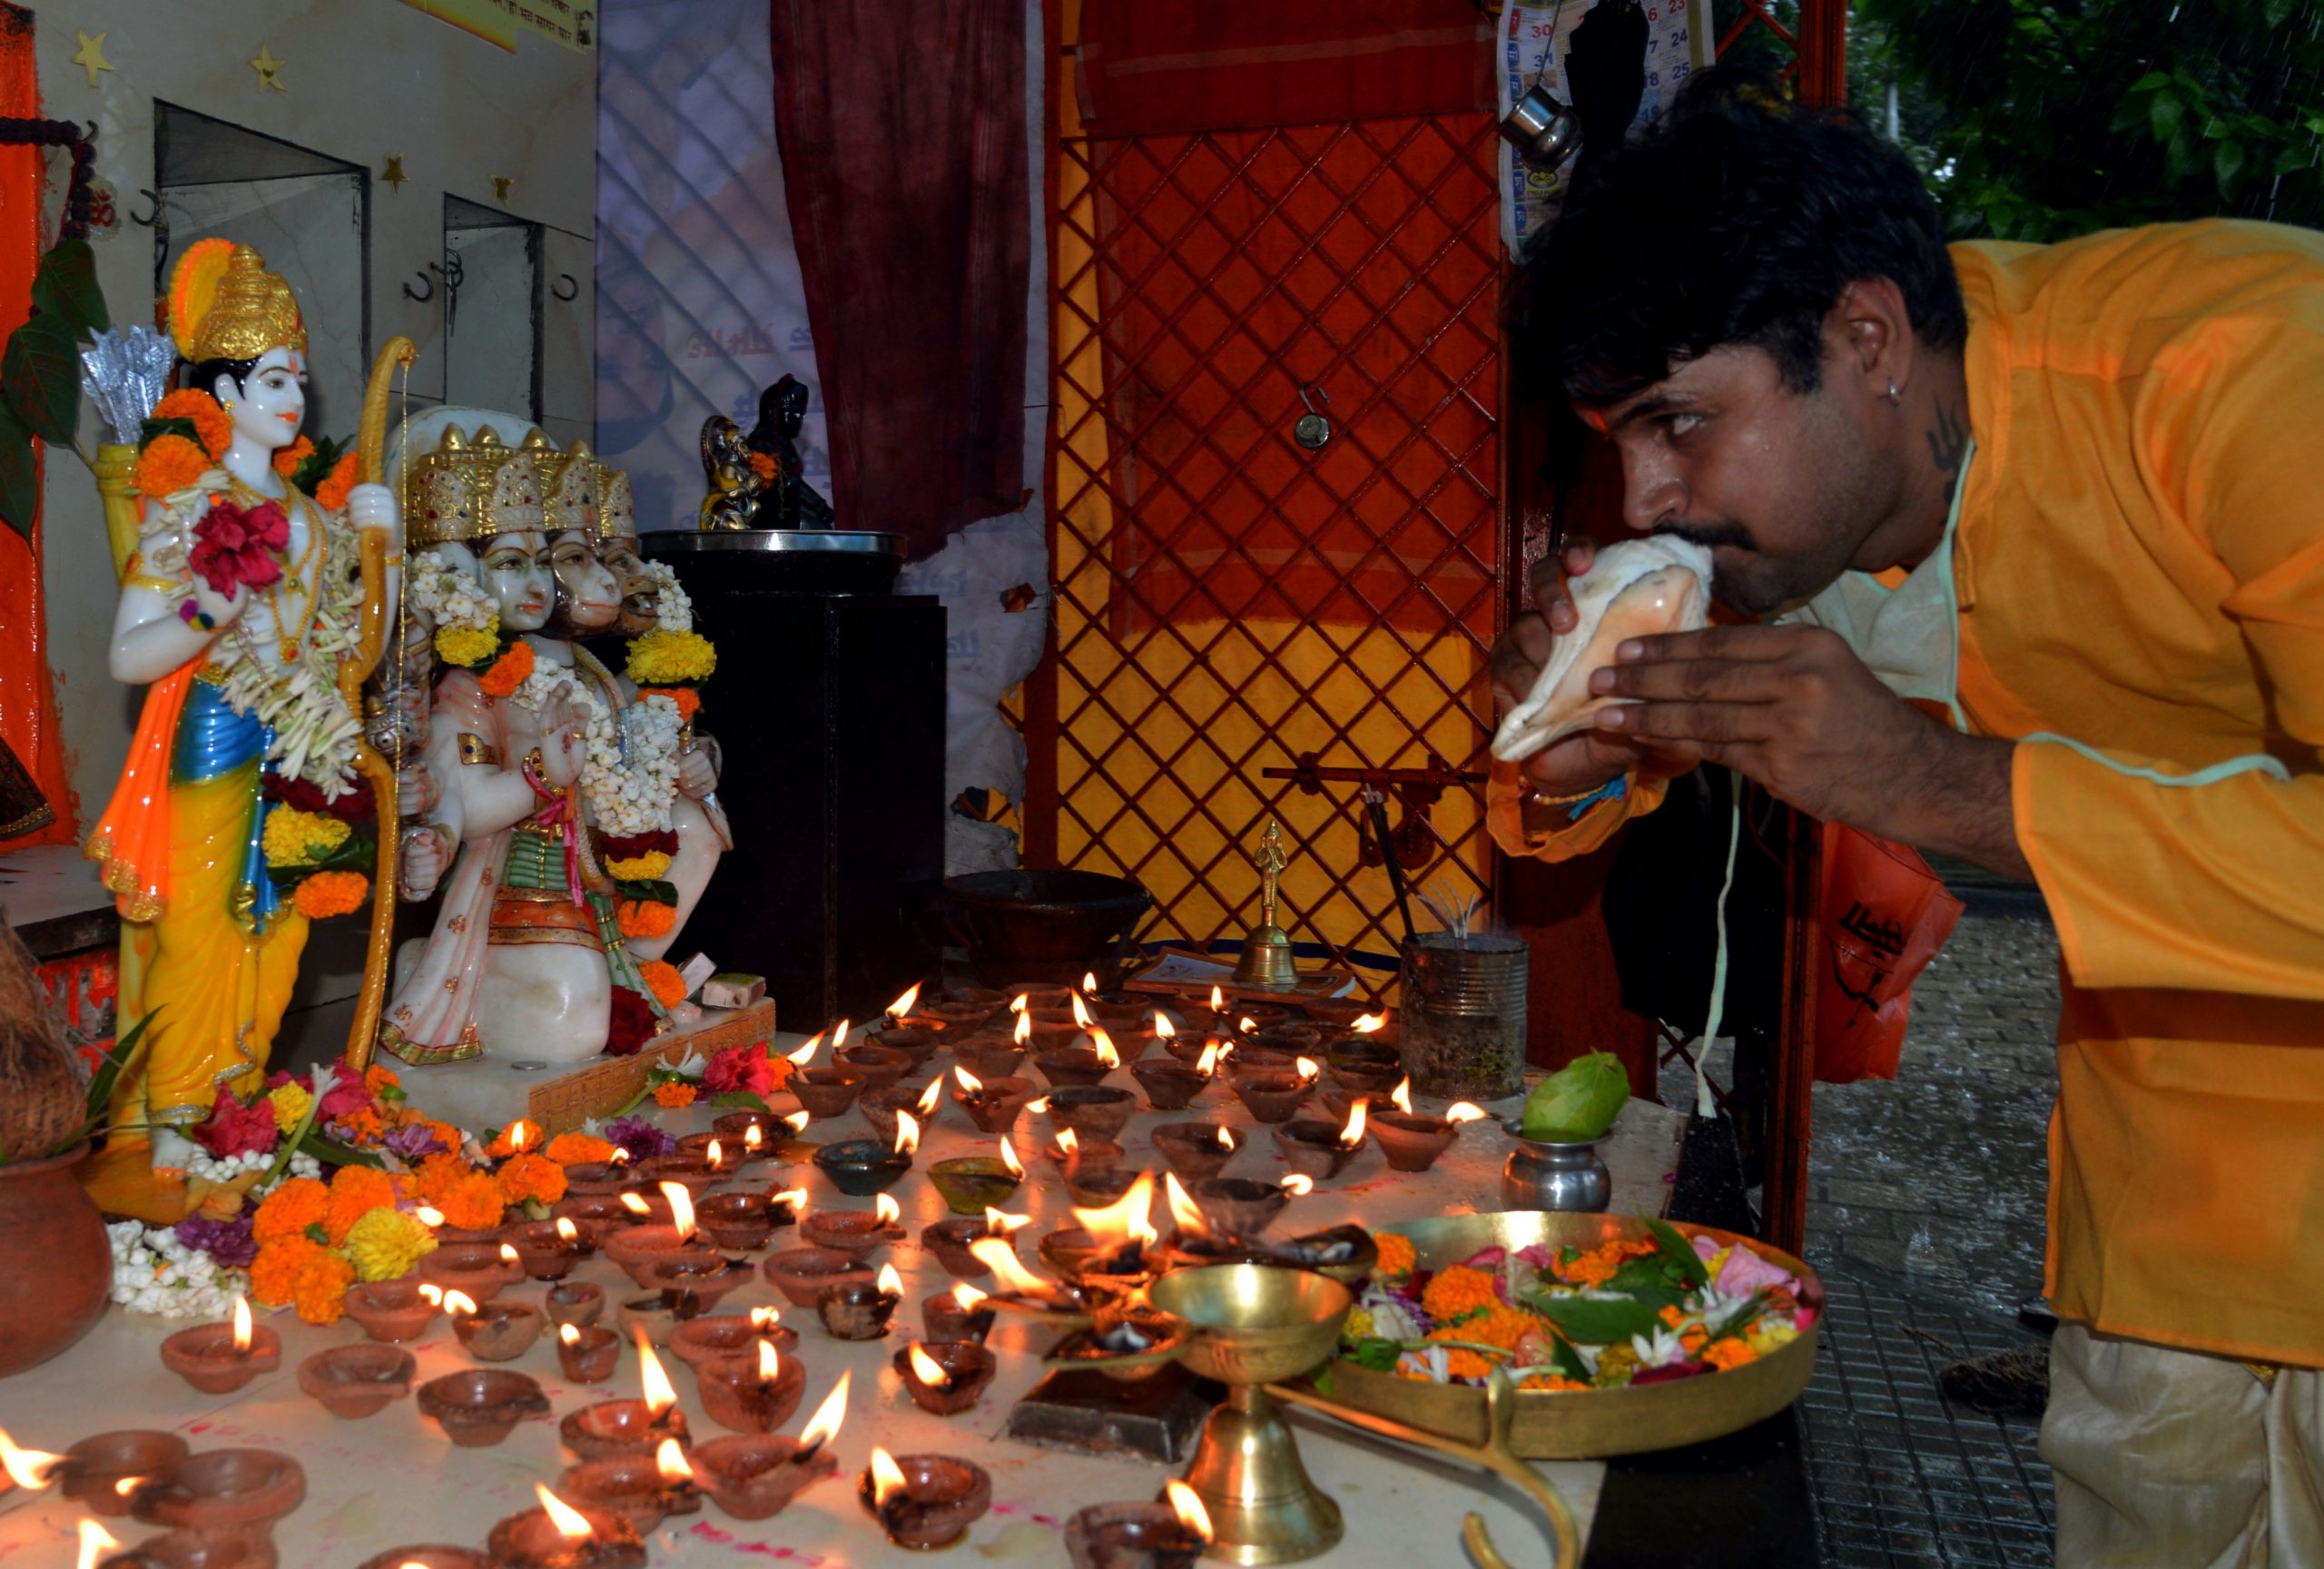 A Hindu devotee performs a ritual while offering orayers to Hindu deity Ram for the groundbreaking ceremony of the Ram Temple in Ayodhaya, in Mumbai on August 5, 2020. - Indian Prime Minister Narendra Modi took centre stage on August 5 at a ceremony laying the foundations for a temple at a flashpoint holy site exactly a year after imposing direct rule on Muslim-majority Kashmir -- twin triumphs for his Hindu nationalist government. (Photo by Sujit Jaiswal / AFP) (Photo by SUJIT JAISWAL/AFP via Getty Images)